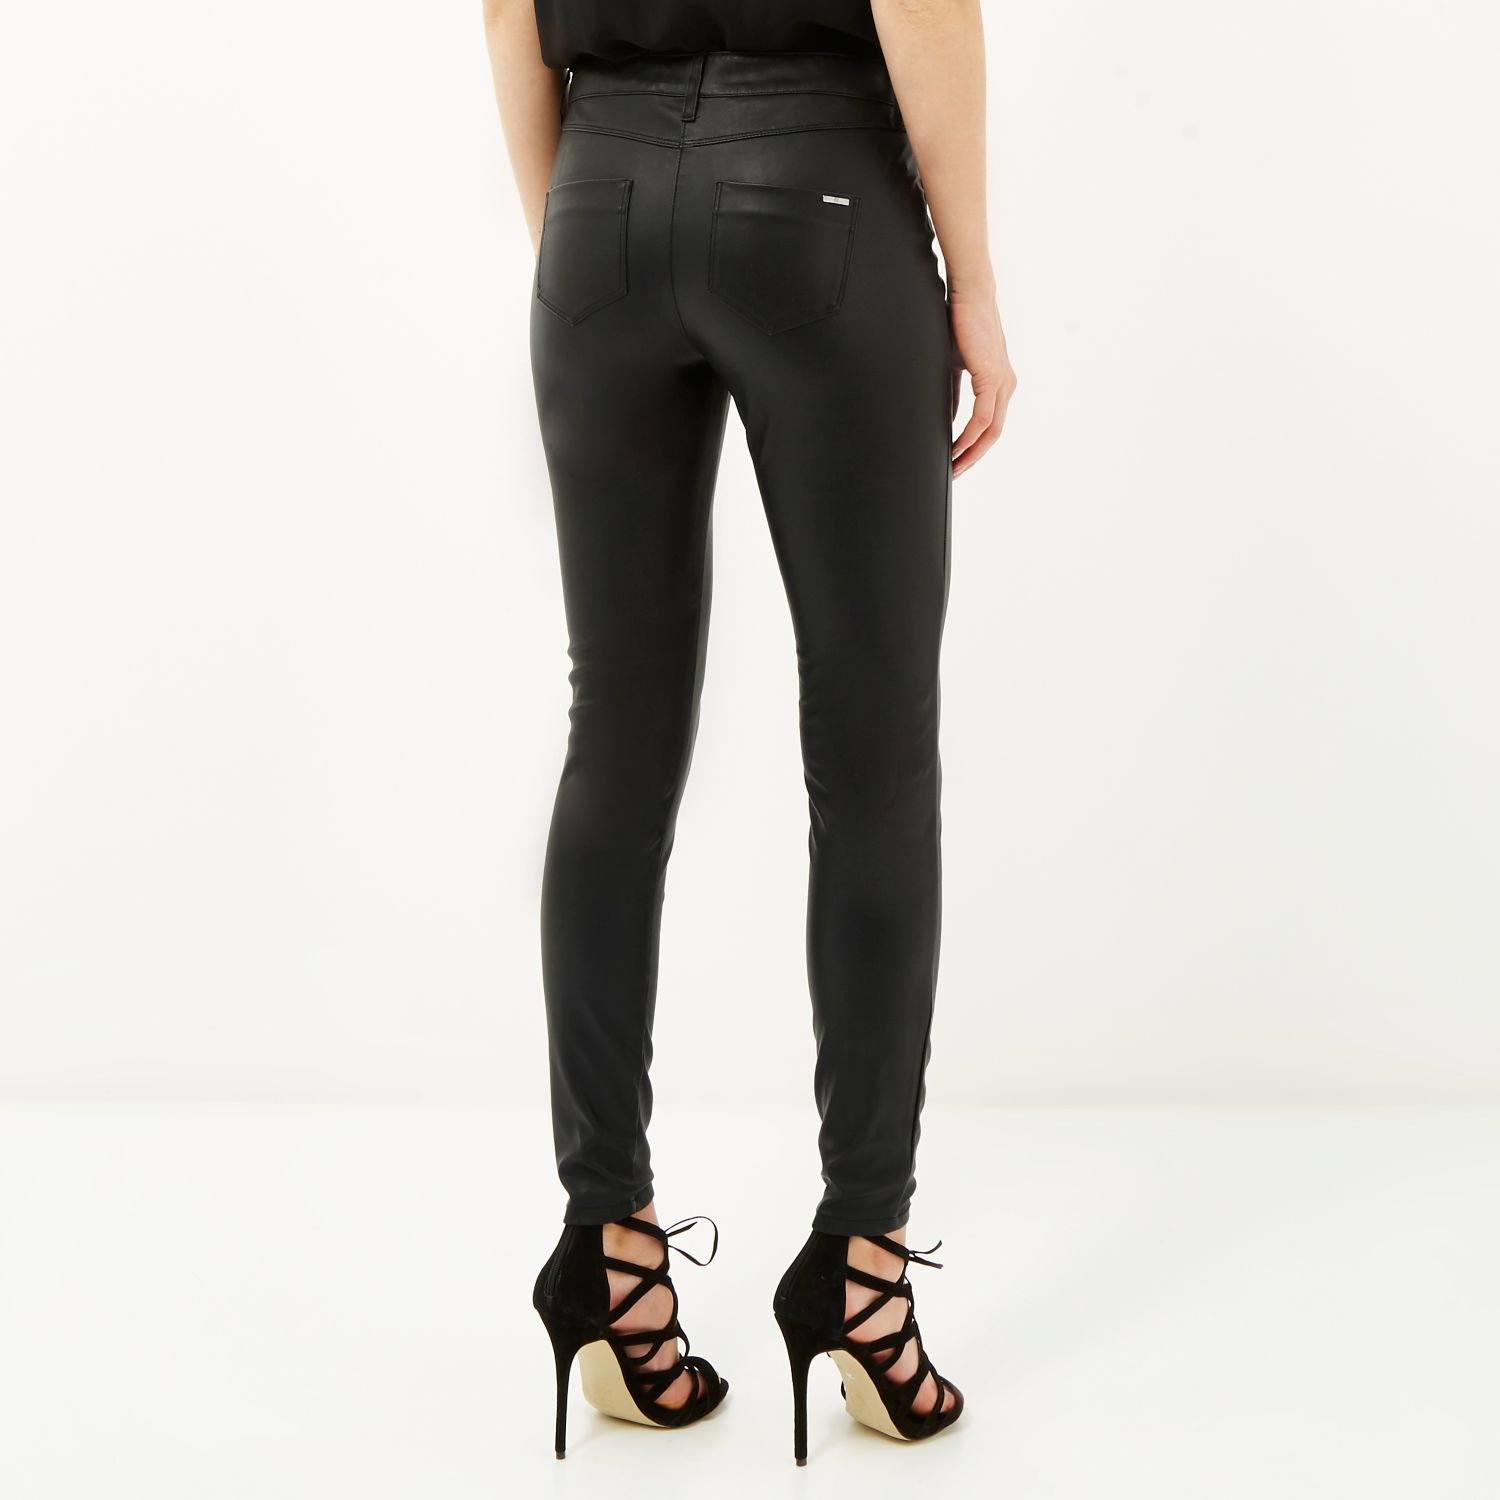 22b6ec479b089f River Island Black Lace-up Leather-look Trousers in Black - Lyst